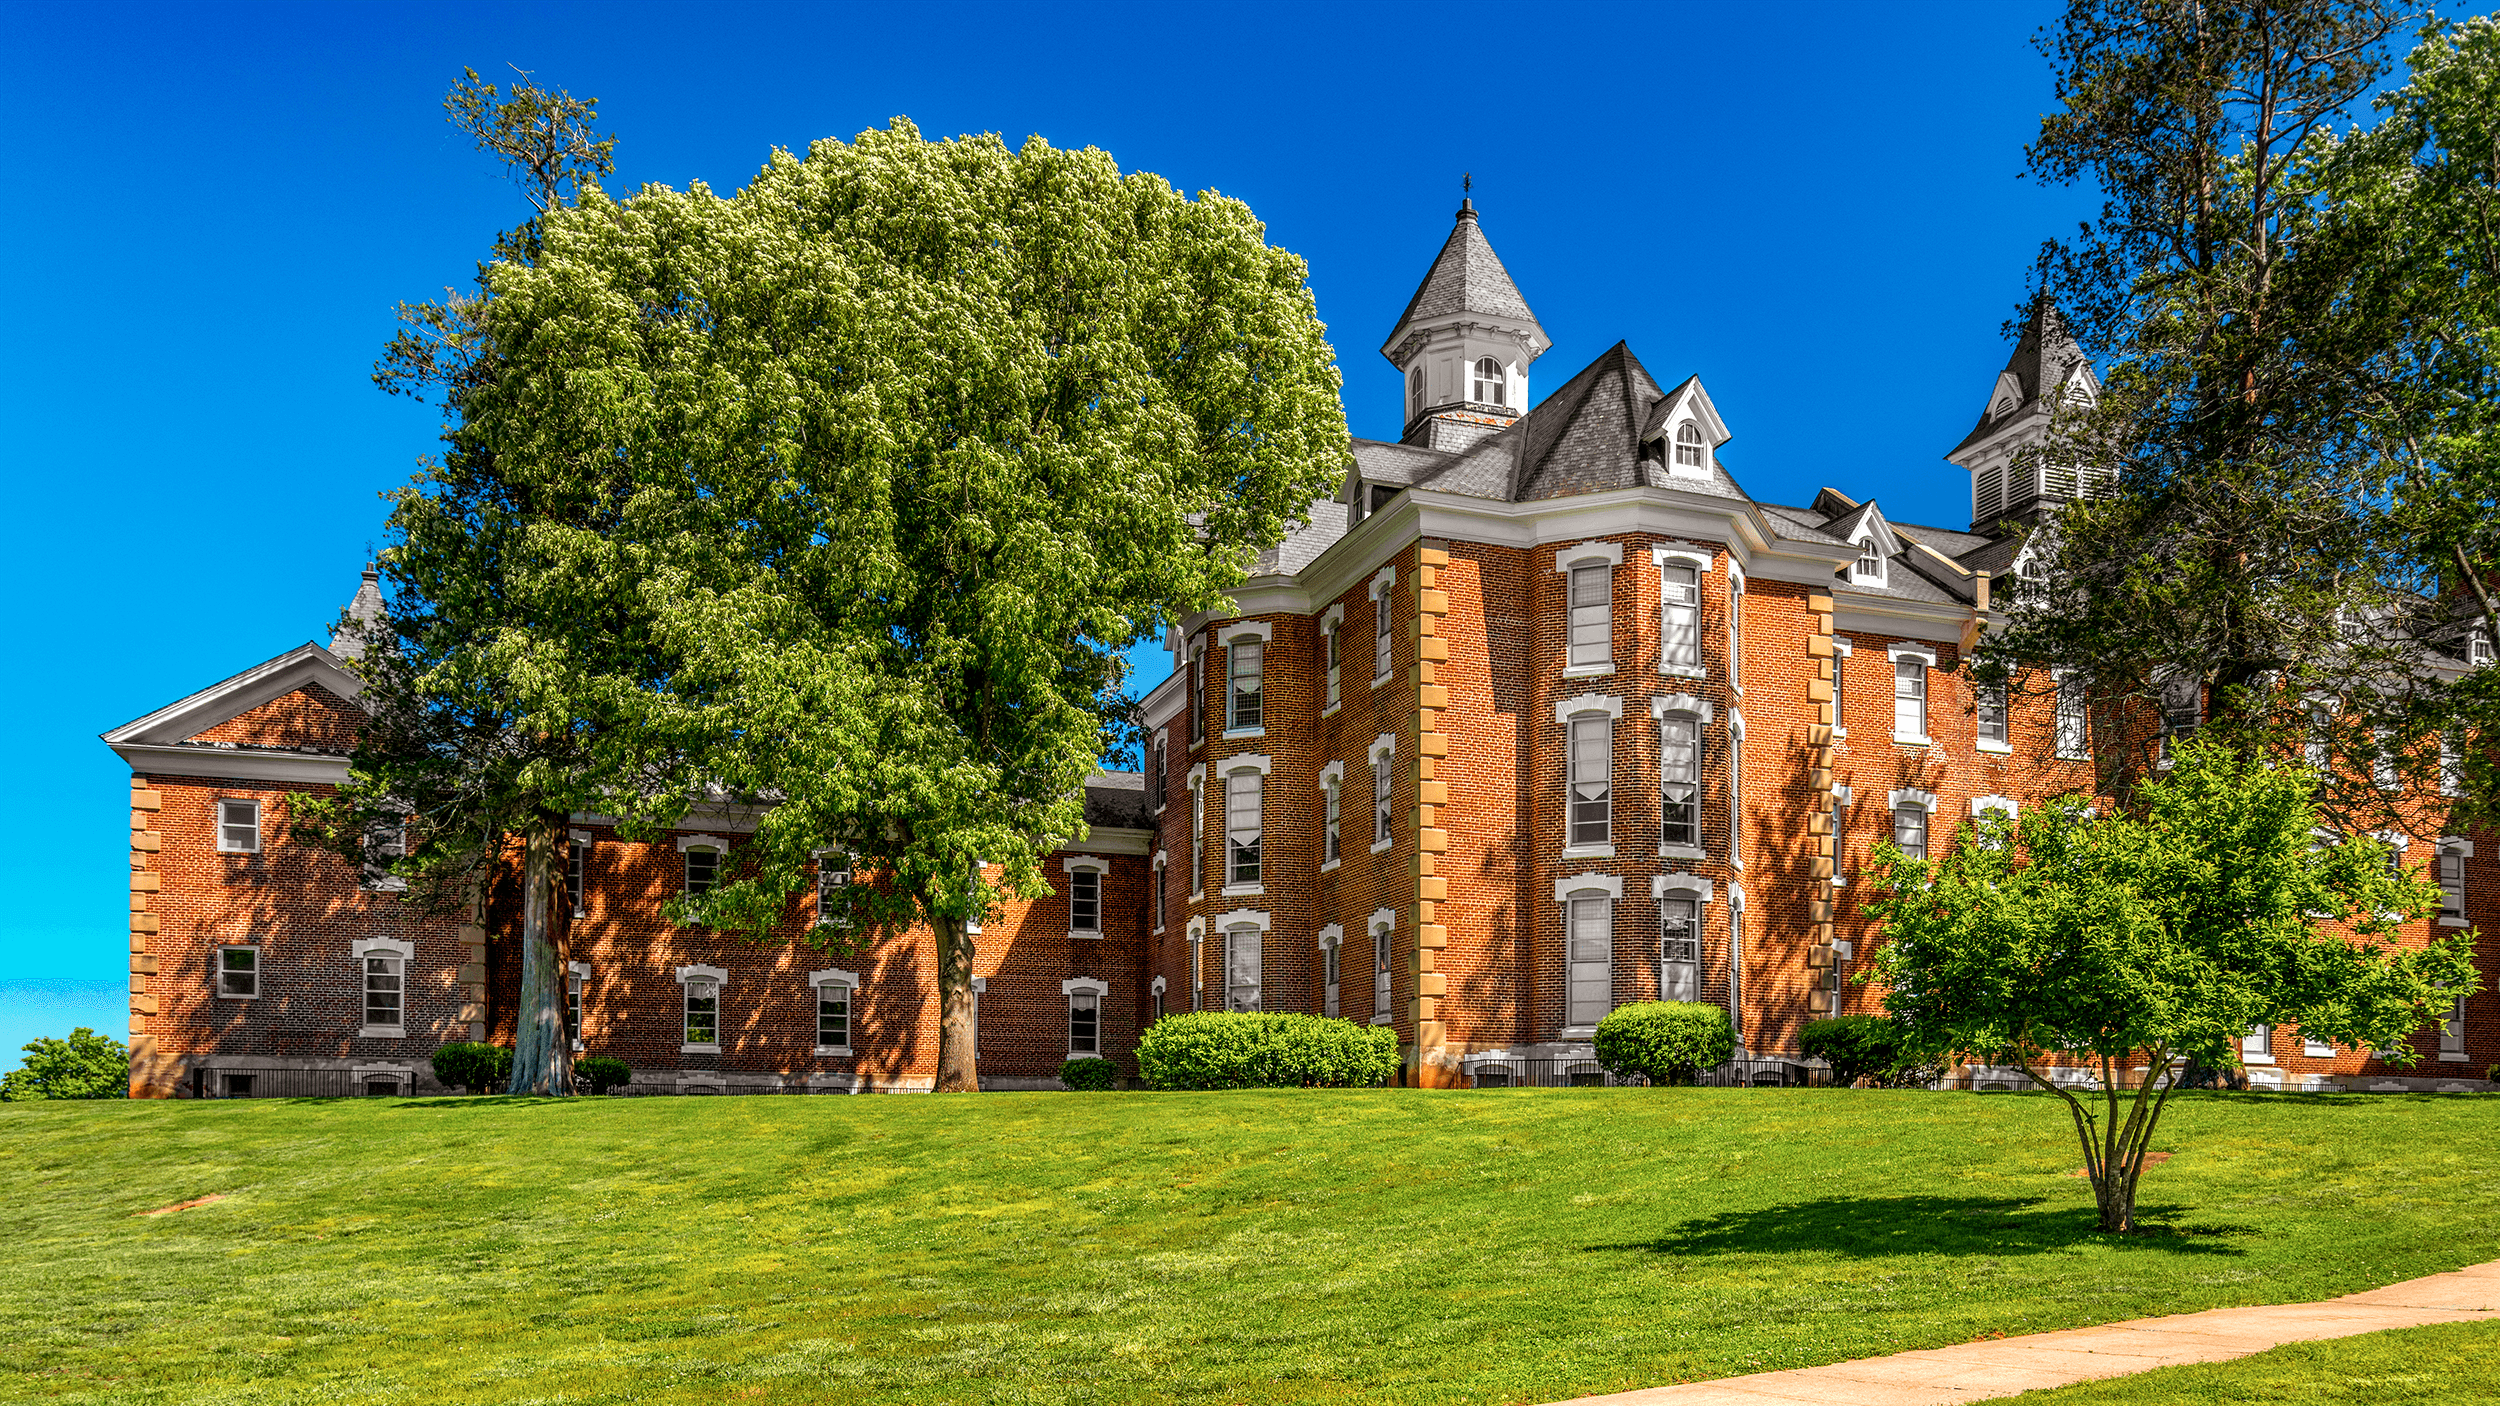 The success of the hospital led the General Assembly to appropriate the required funds to finally finish the north wing, increasing the capacity for an additional 190 patients. In 1890, the  Western North Carolina Insane Asylum  officially changed its name to  State Hospital at Morganton , a designation it kept until 1959 when it became  Broughton Hospital , named for WWII Governor of North Carolina Joseph Melville Broughton (1888-1949).